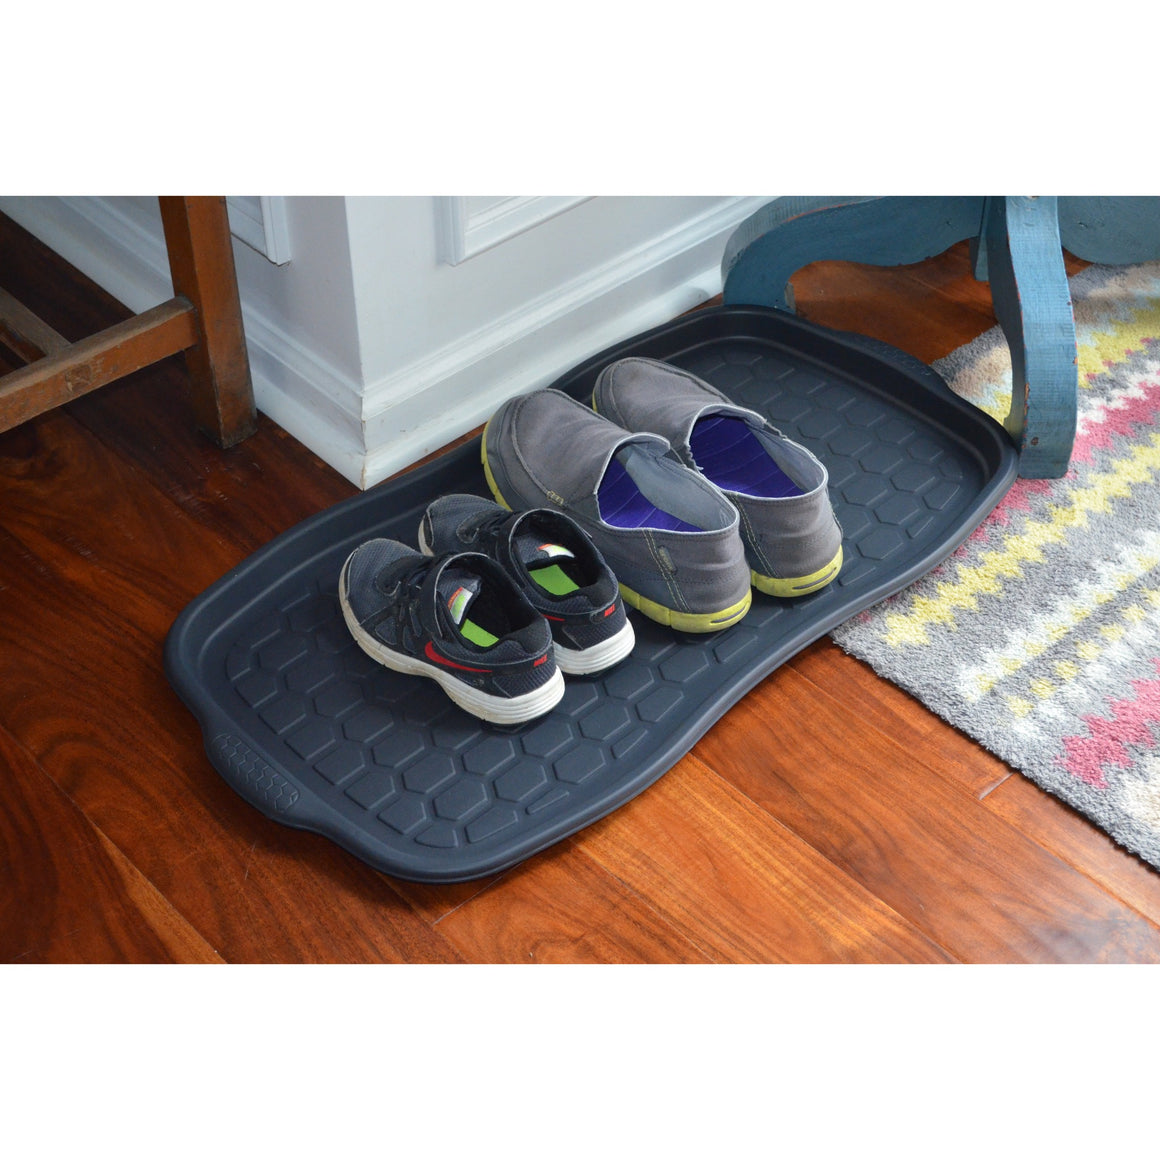 boot Tray - shown on kitchen floor with shoes placed on it